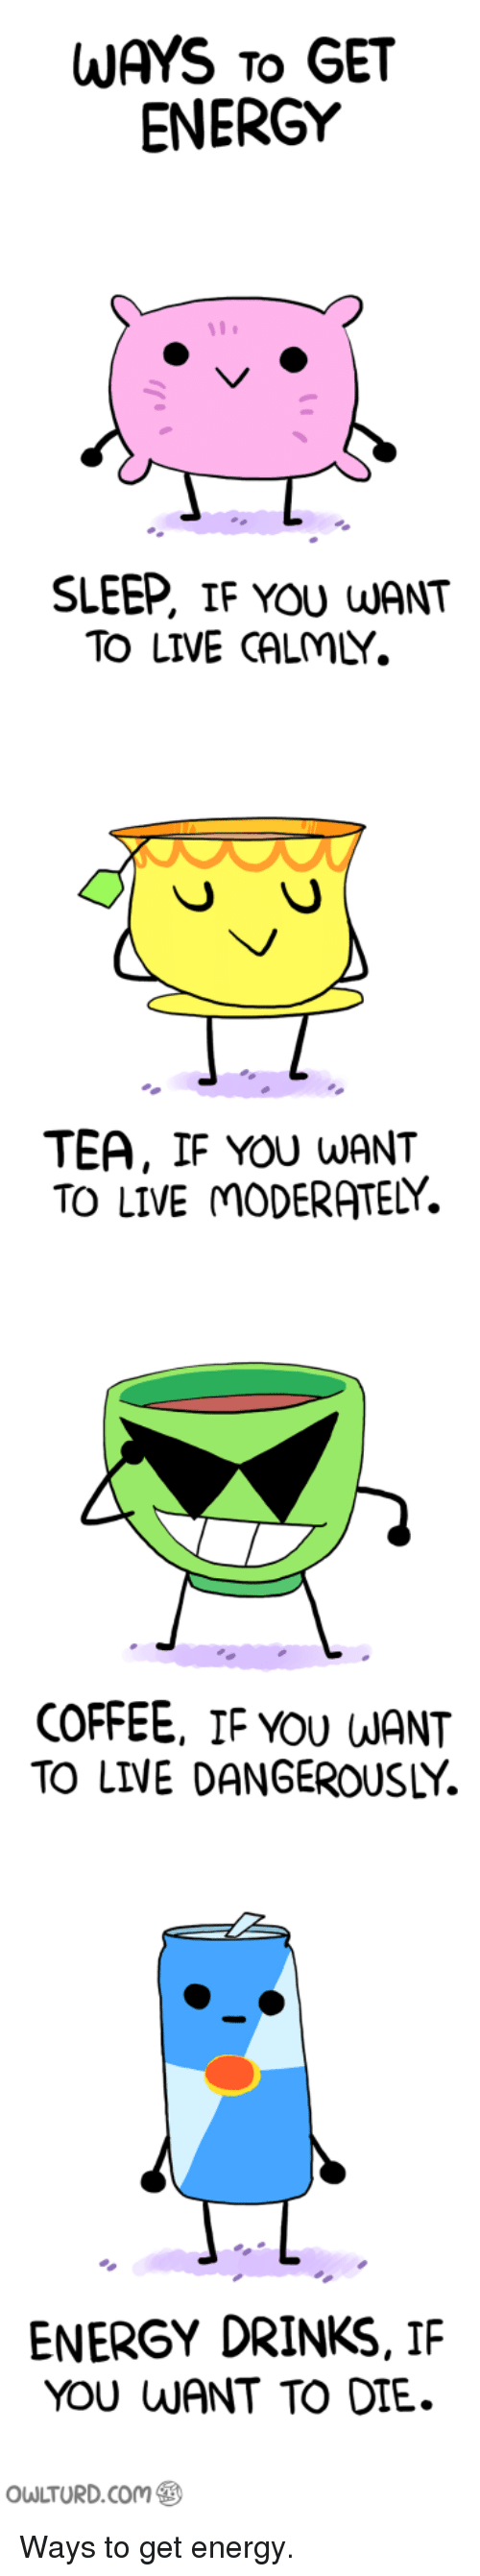 live dangerously: WAYS To GET  ENERGY  SLEEP, IF YOU WANT  TO LIVE CALMLY.  TEA, IF YOU WANT  TO LIVE mODERATELY.  COFFEE, IF YOU WANT  TO LIVE DANGEROUSLY.  ENERGY DRINKS, IF  YOU WANT TO DIE.  owLTURD.com Ways to get energy.